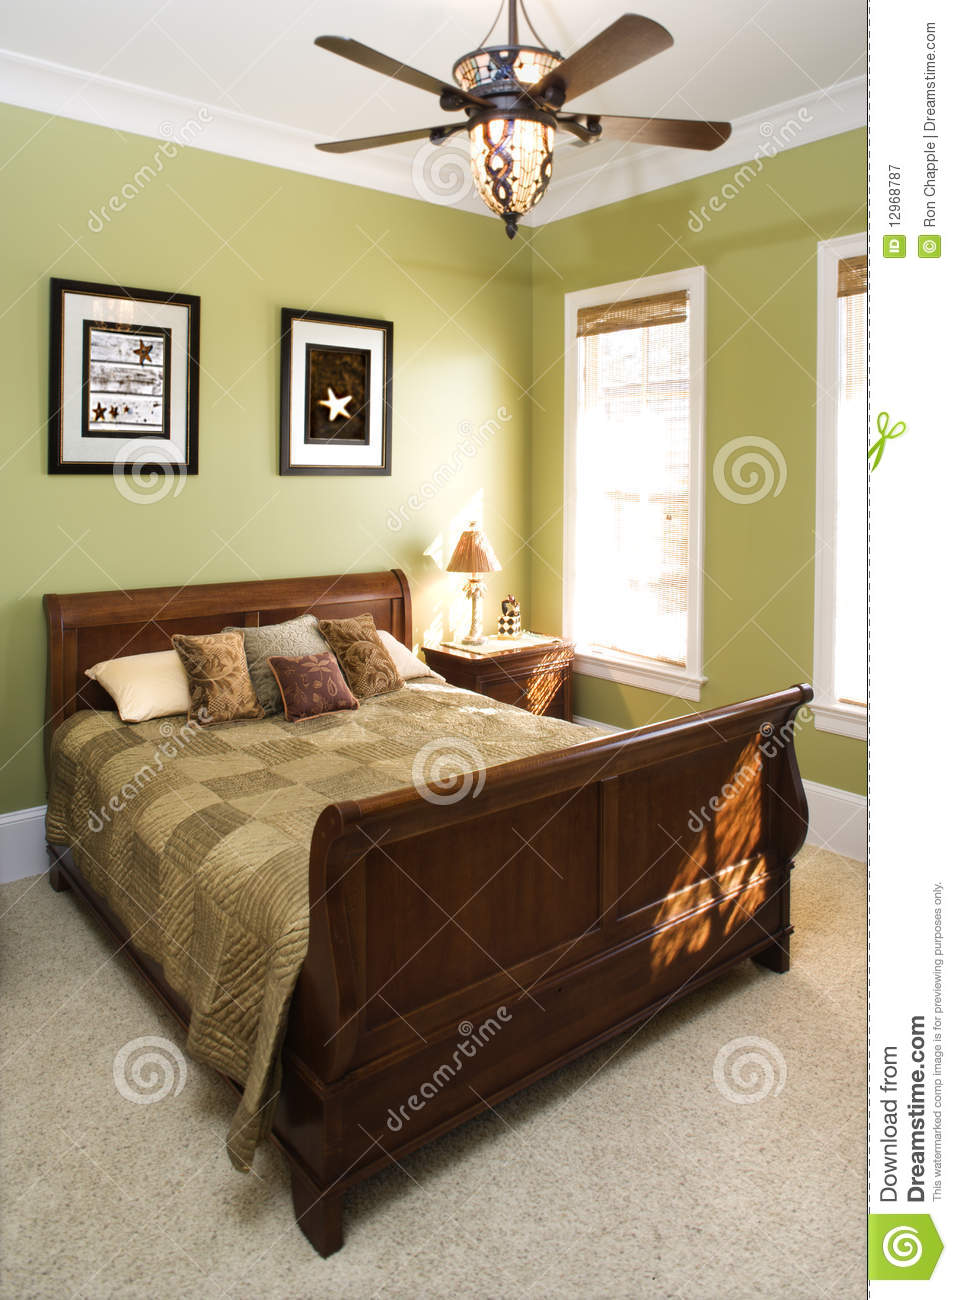 Green Bedroom With Ceiling Fan Stock Image  Image 12968787